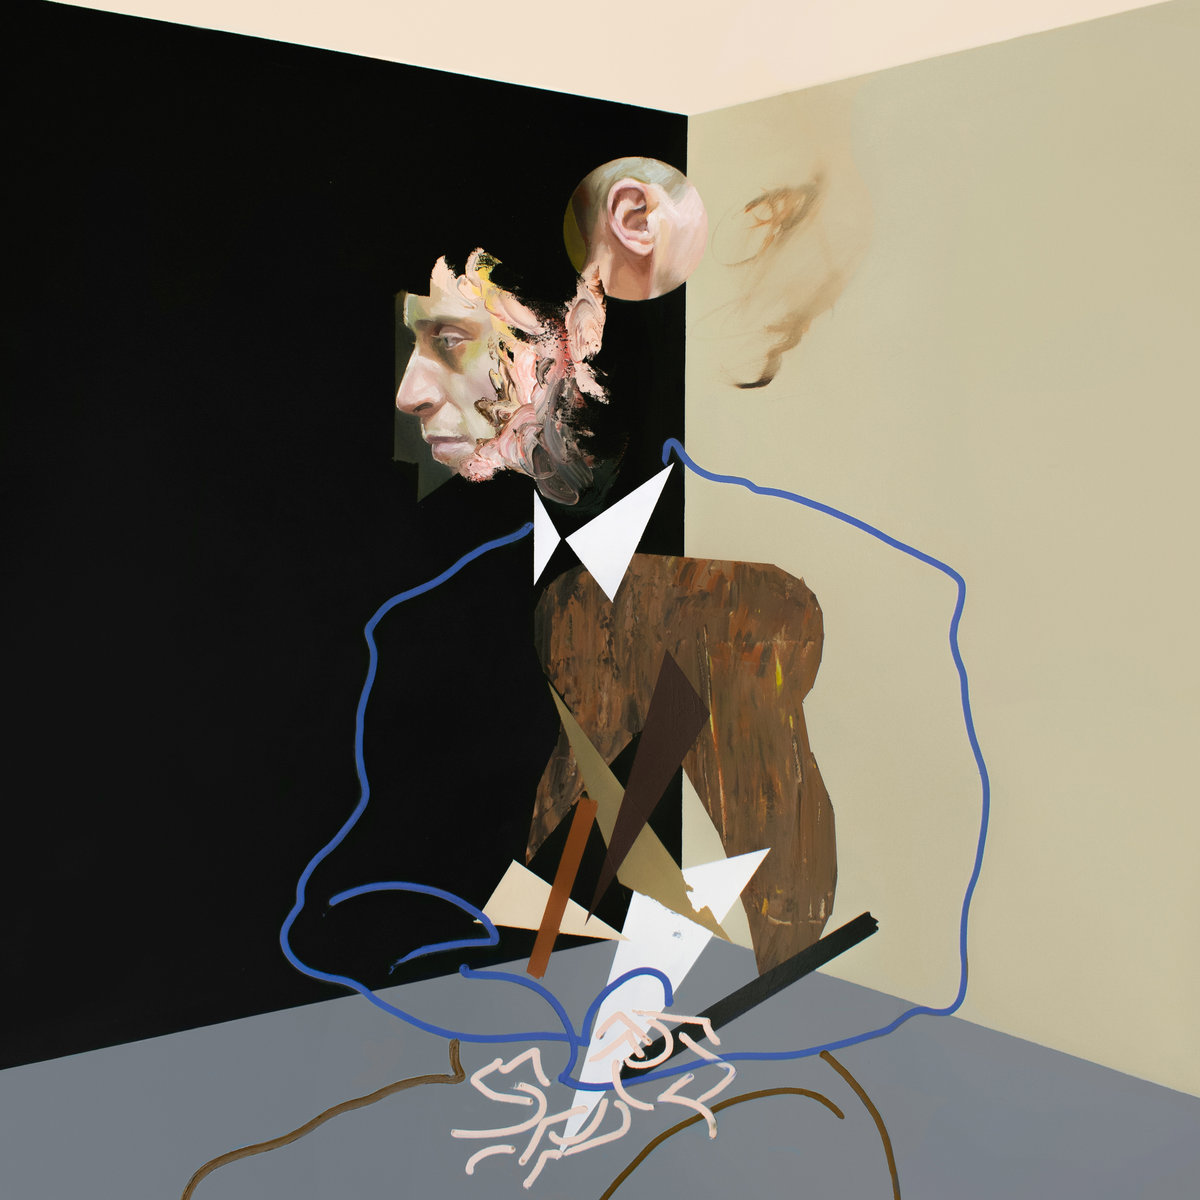 Jean-Paul Sartre, Francis Bacon and the existential artwork of